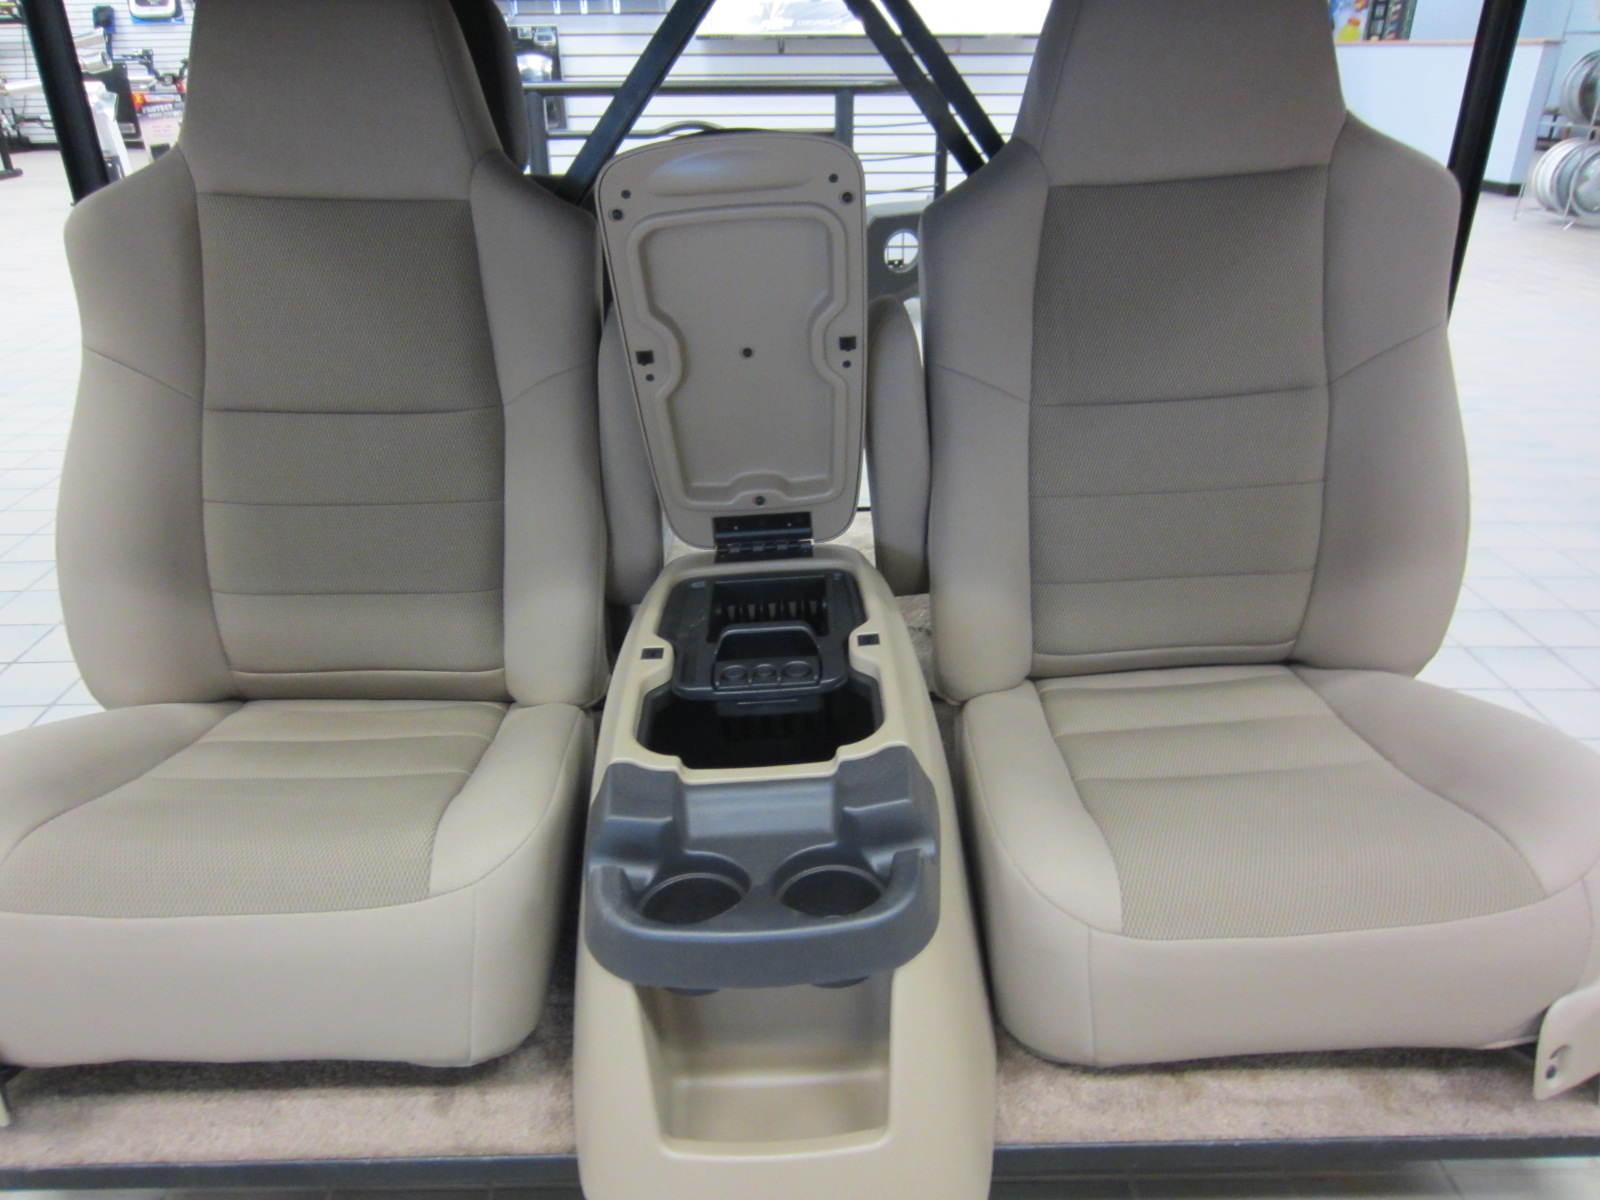 Chevy Silverado Replacement Seats >> 2008 Chevy Silverado Seat Covers Best Iphone Screen